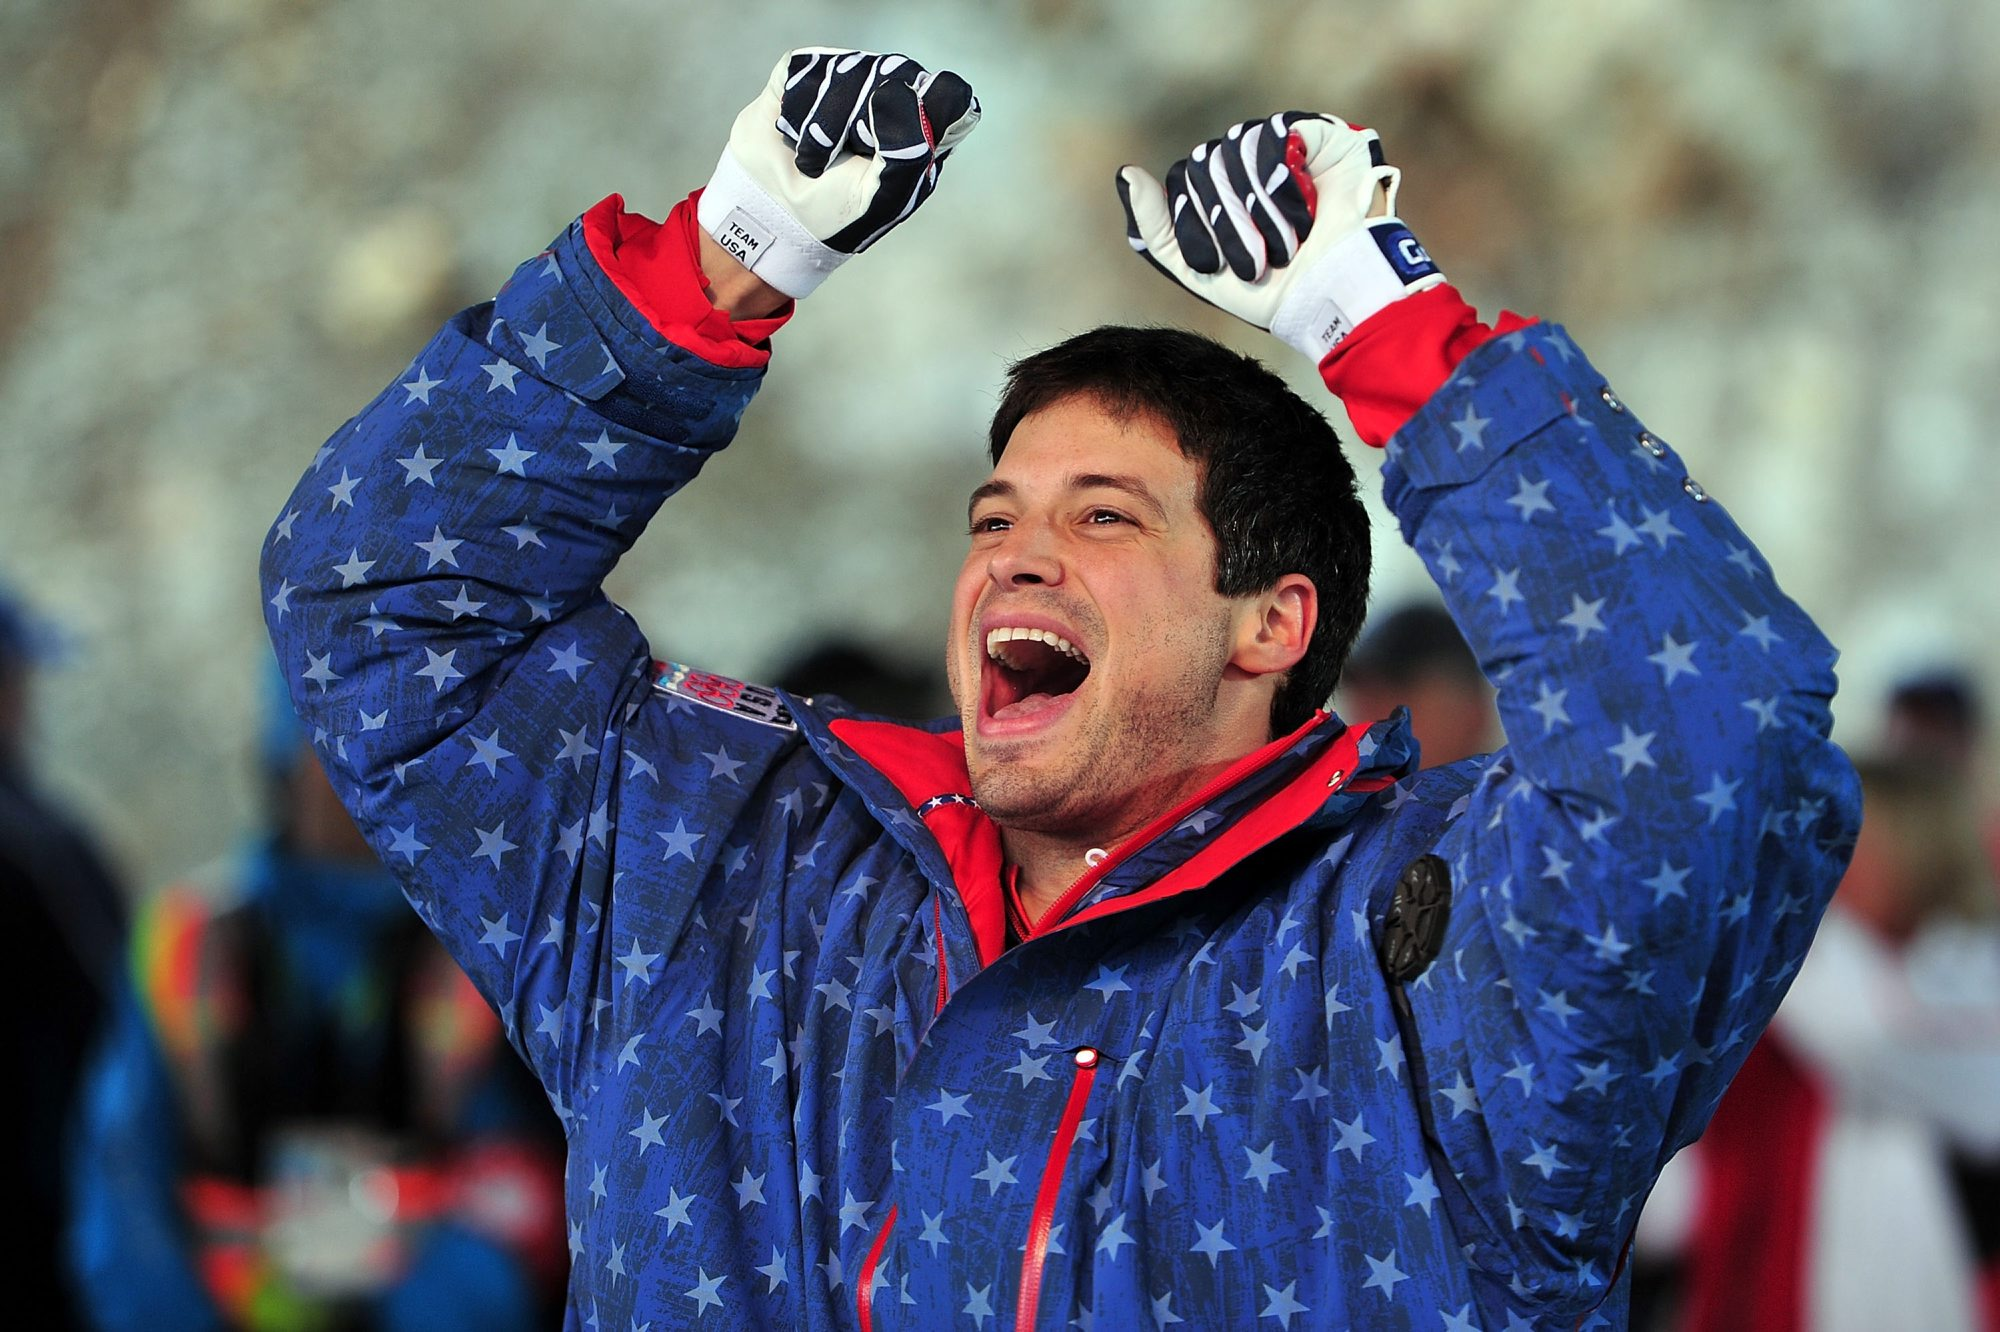 Steve Mesler celebrates after winning the gold medal in the men's four man bobsled at the 2010 Vancouver Winter Olympics. (Getty Images)